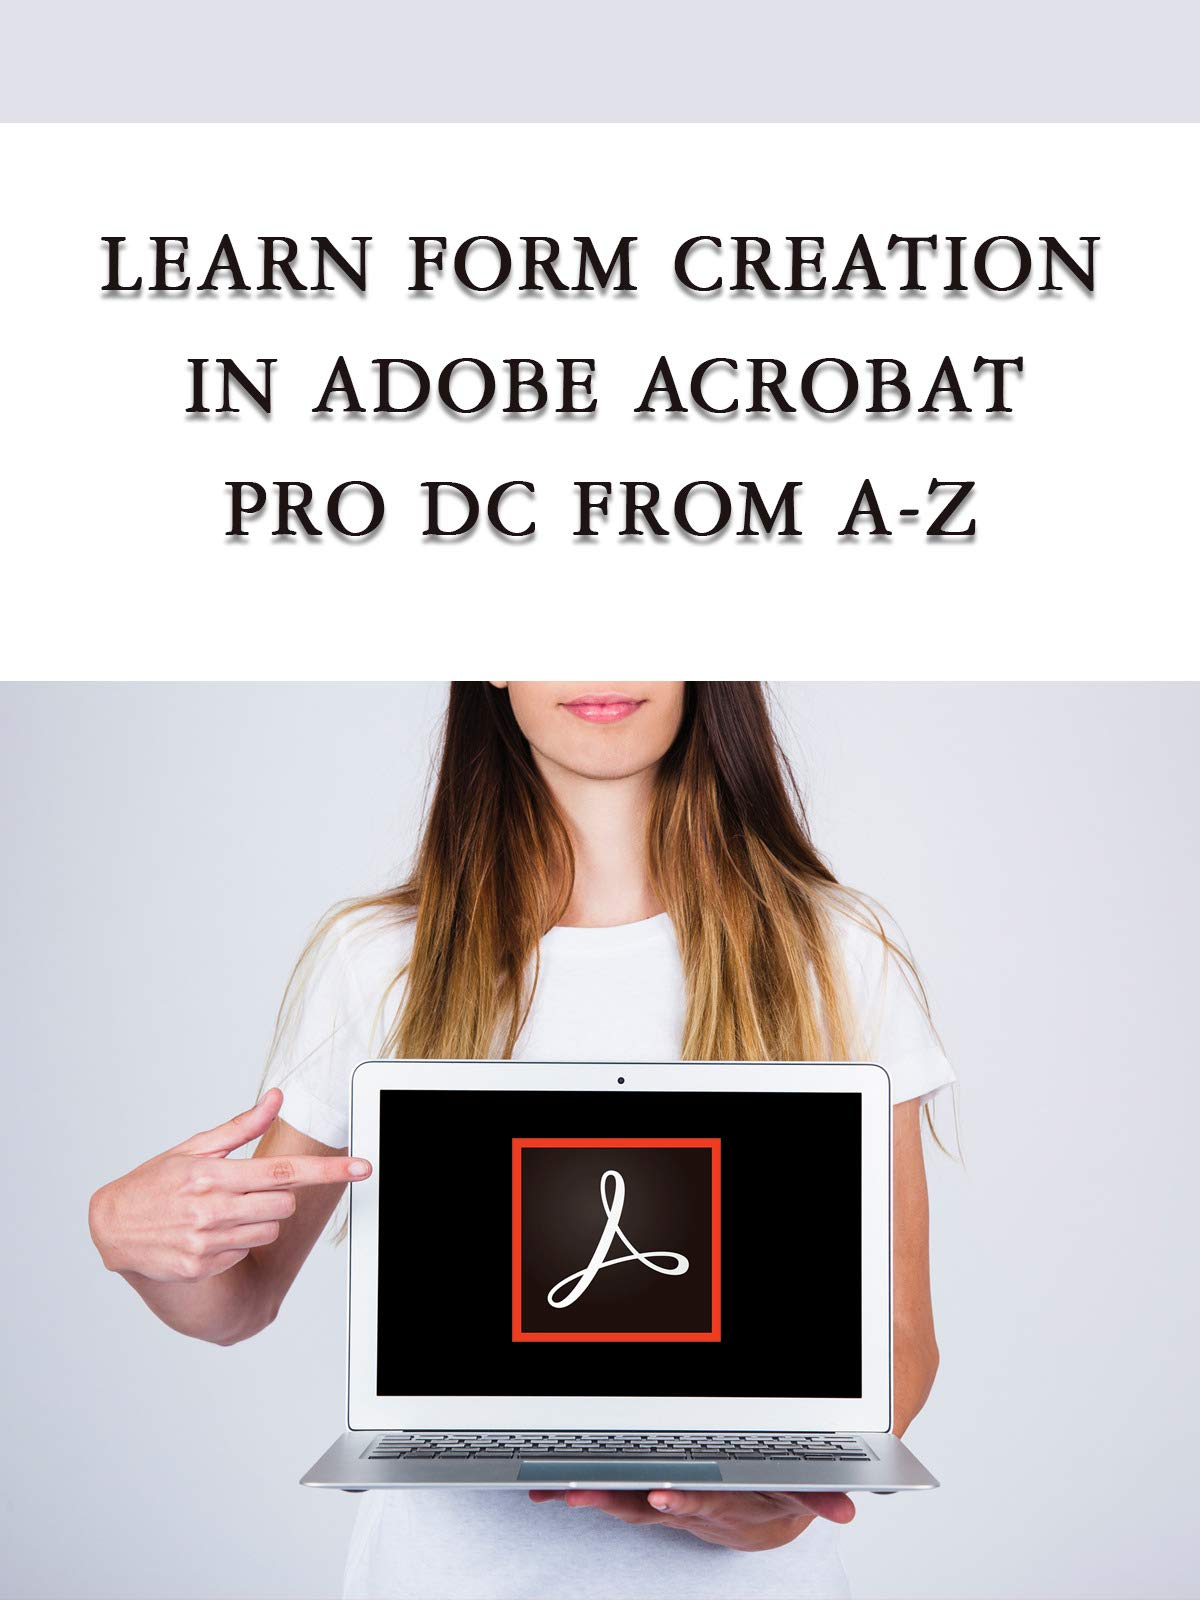 Learn form creation in adobe acrobat pro dc from a-z